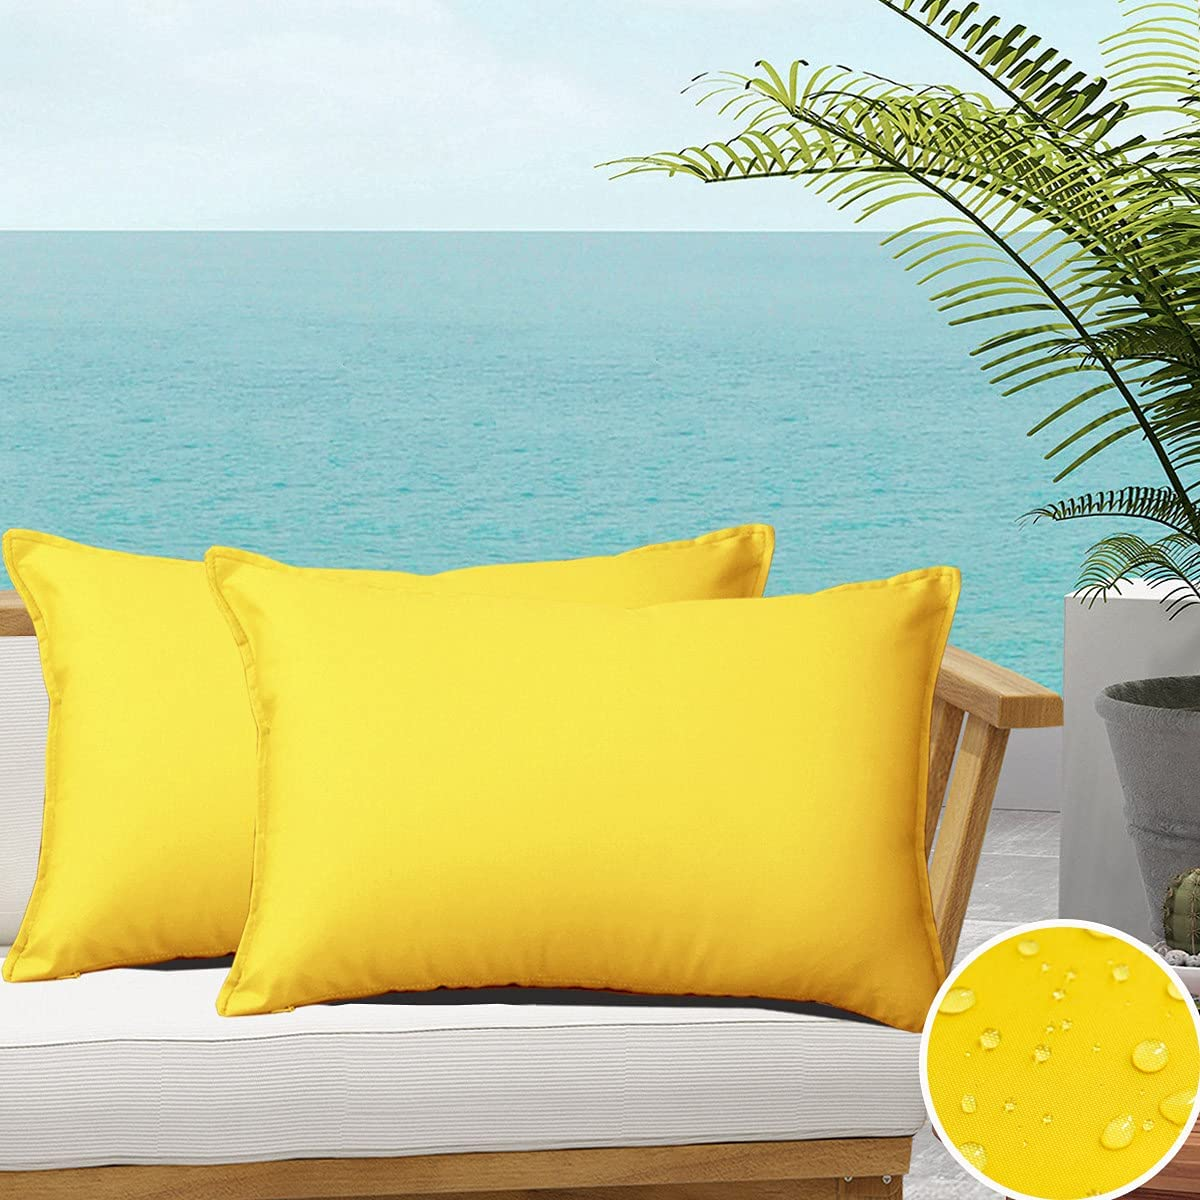 SOFJAGETQ Yellow Outdoor Waterproof Throw Pillow Covers Summer Durable Vibrant Decorative Cushion Shem for Patio Funiture, Garden, Outdoor Sofa ( 12x20 Inches, 2 Pack )